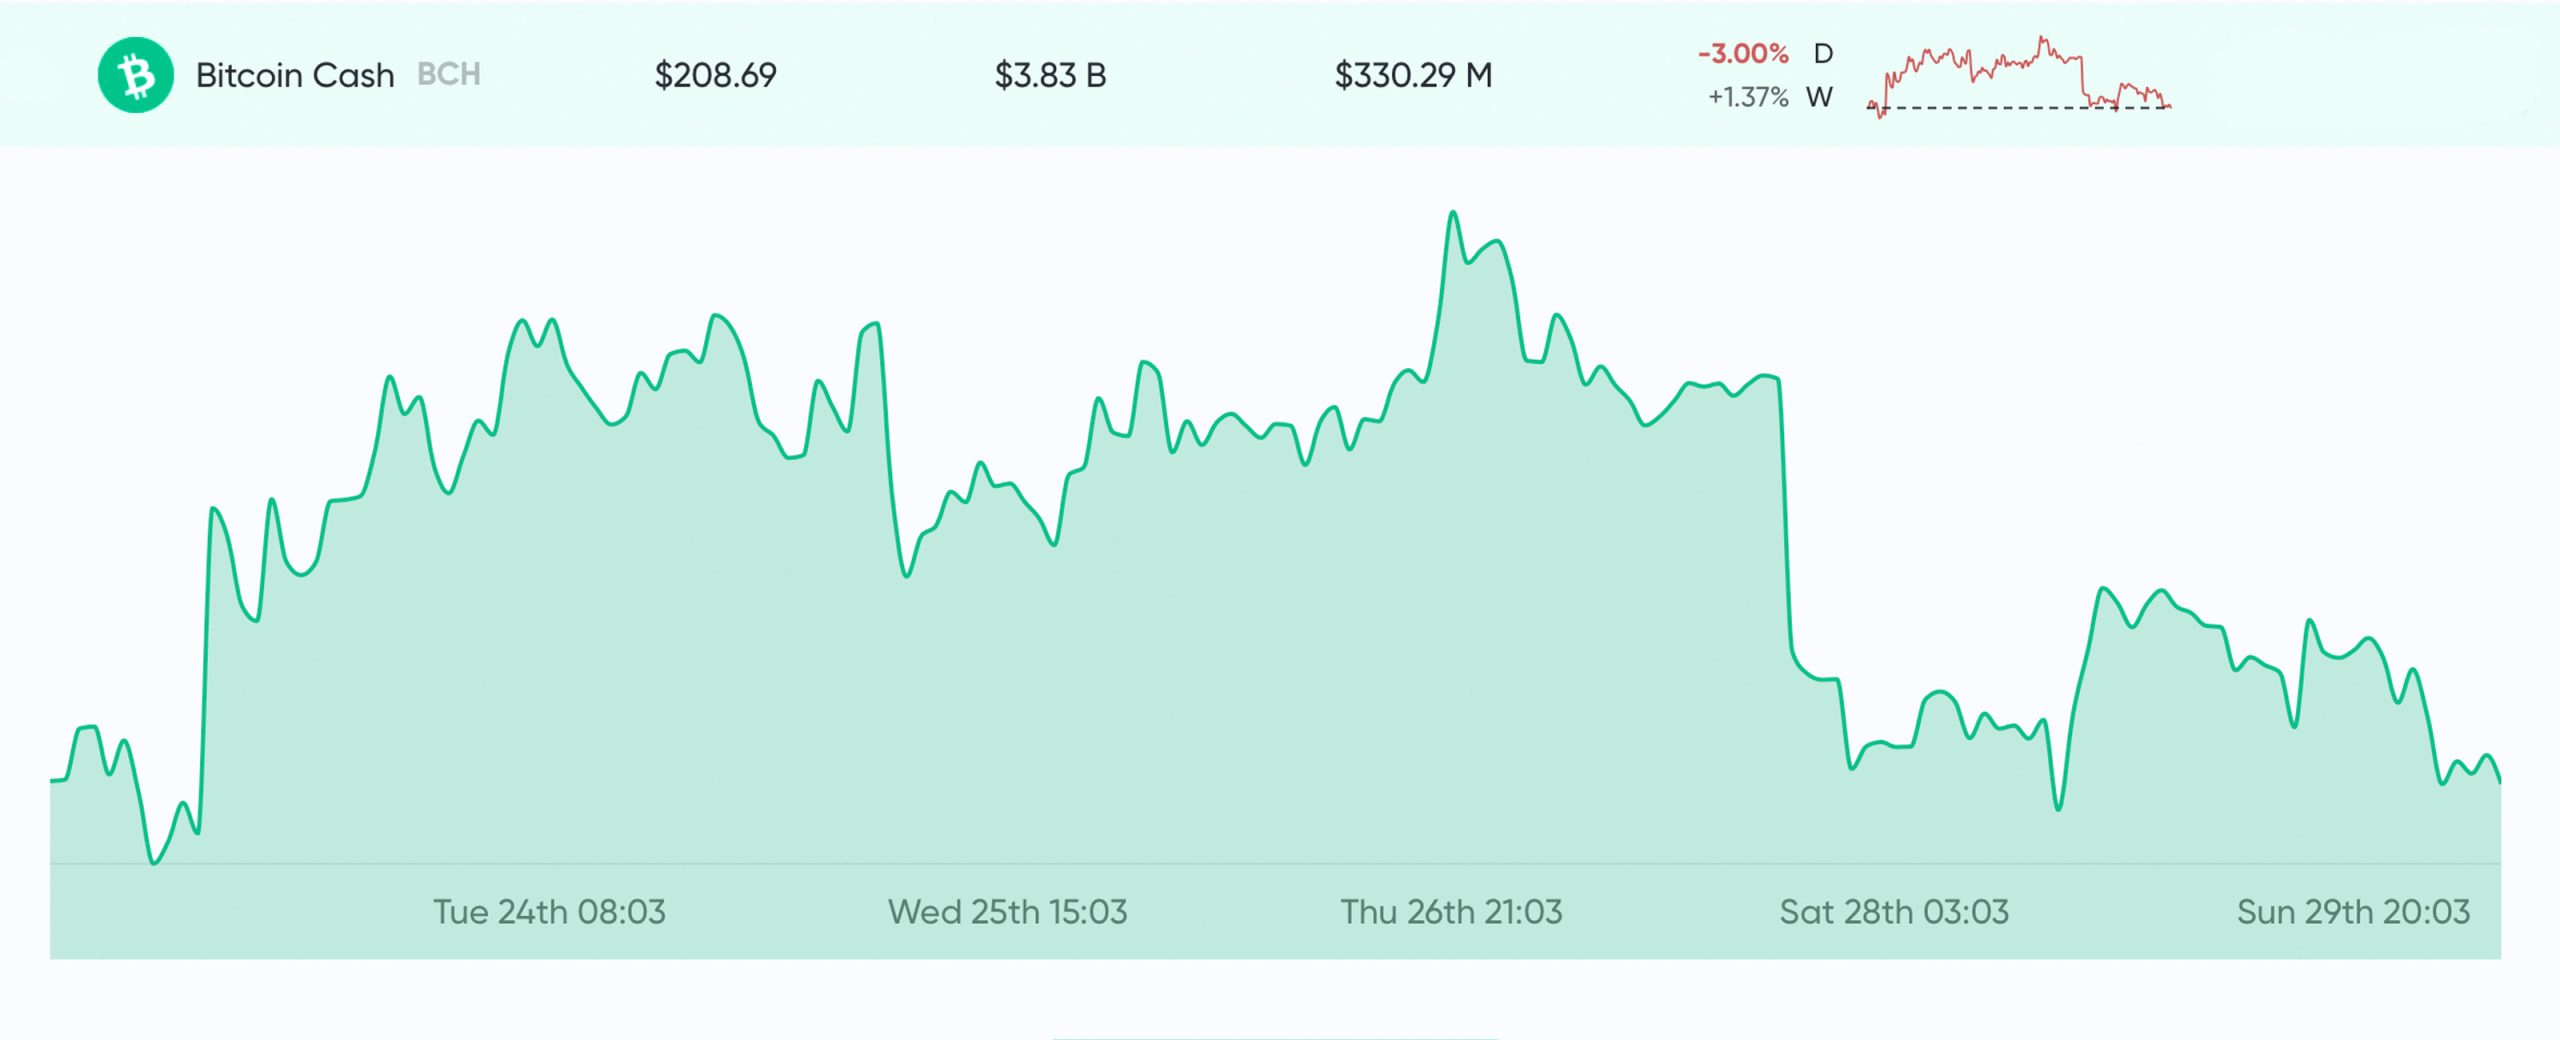 Market Update: Uncertainty Remains Thick as Bears Claw Bitcoin Price Below $6K